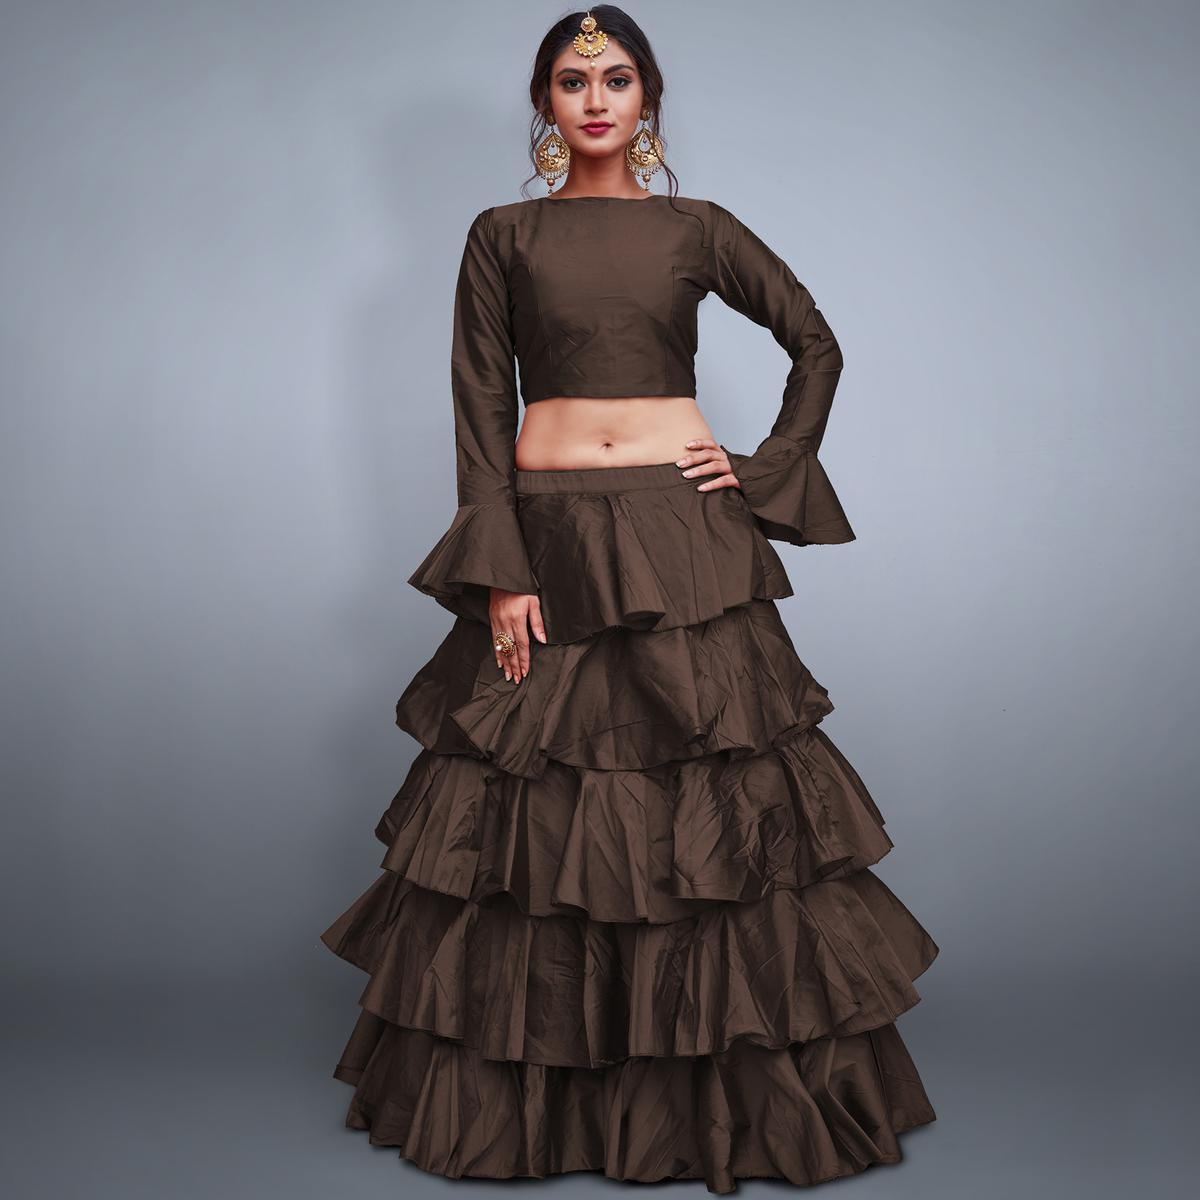 Radiant Dark Brown Colored Party Wear Fancy Tapeta Silk Lehenga Choli